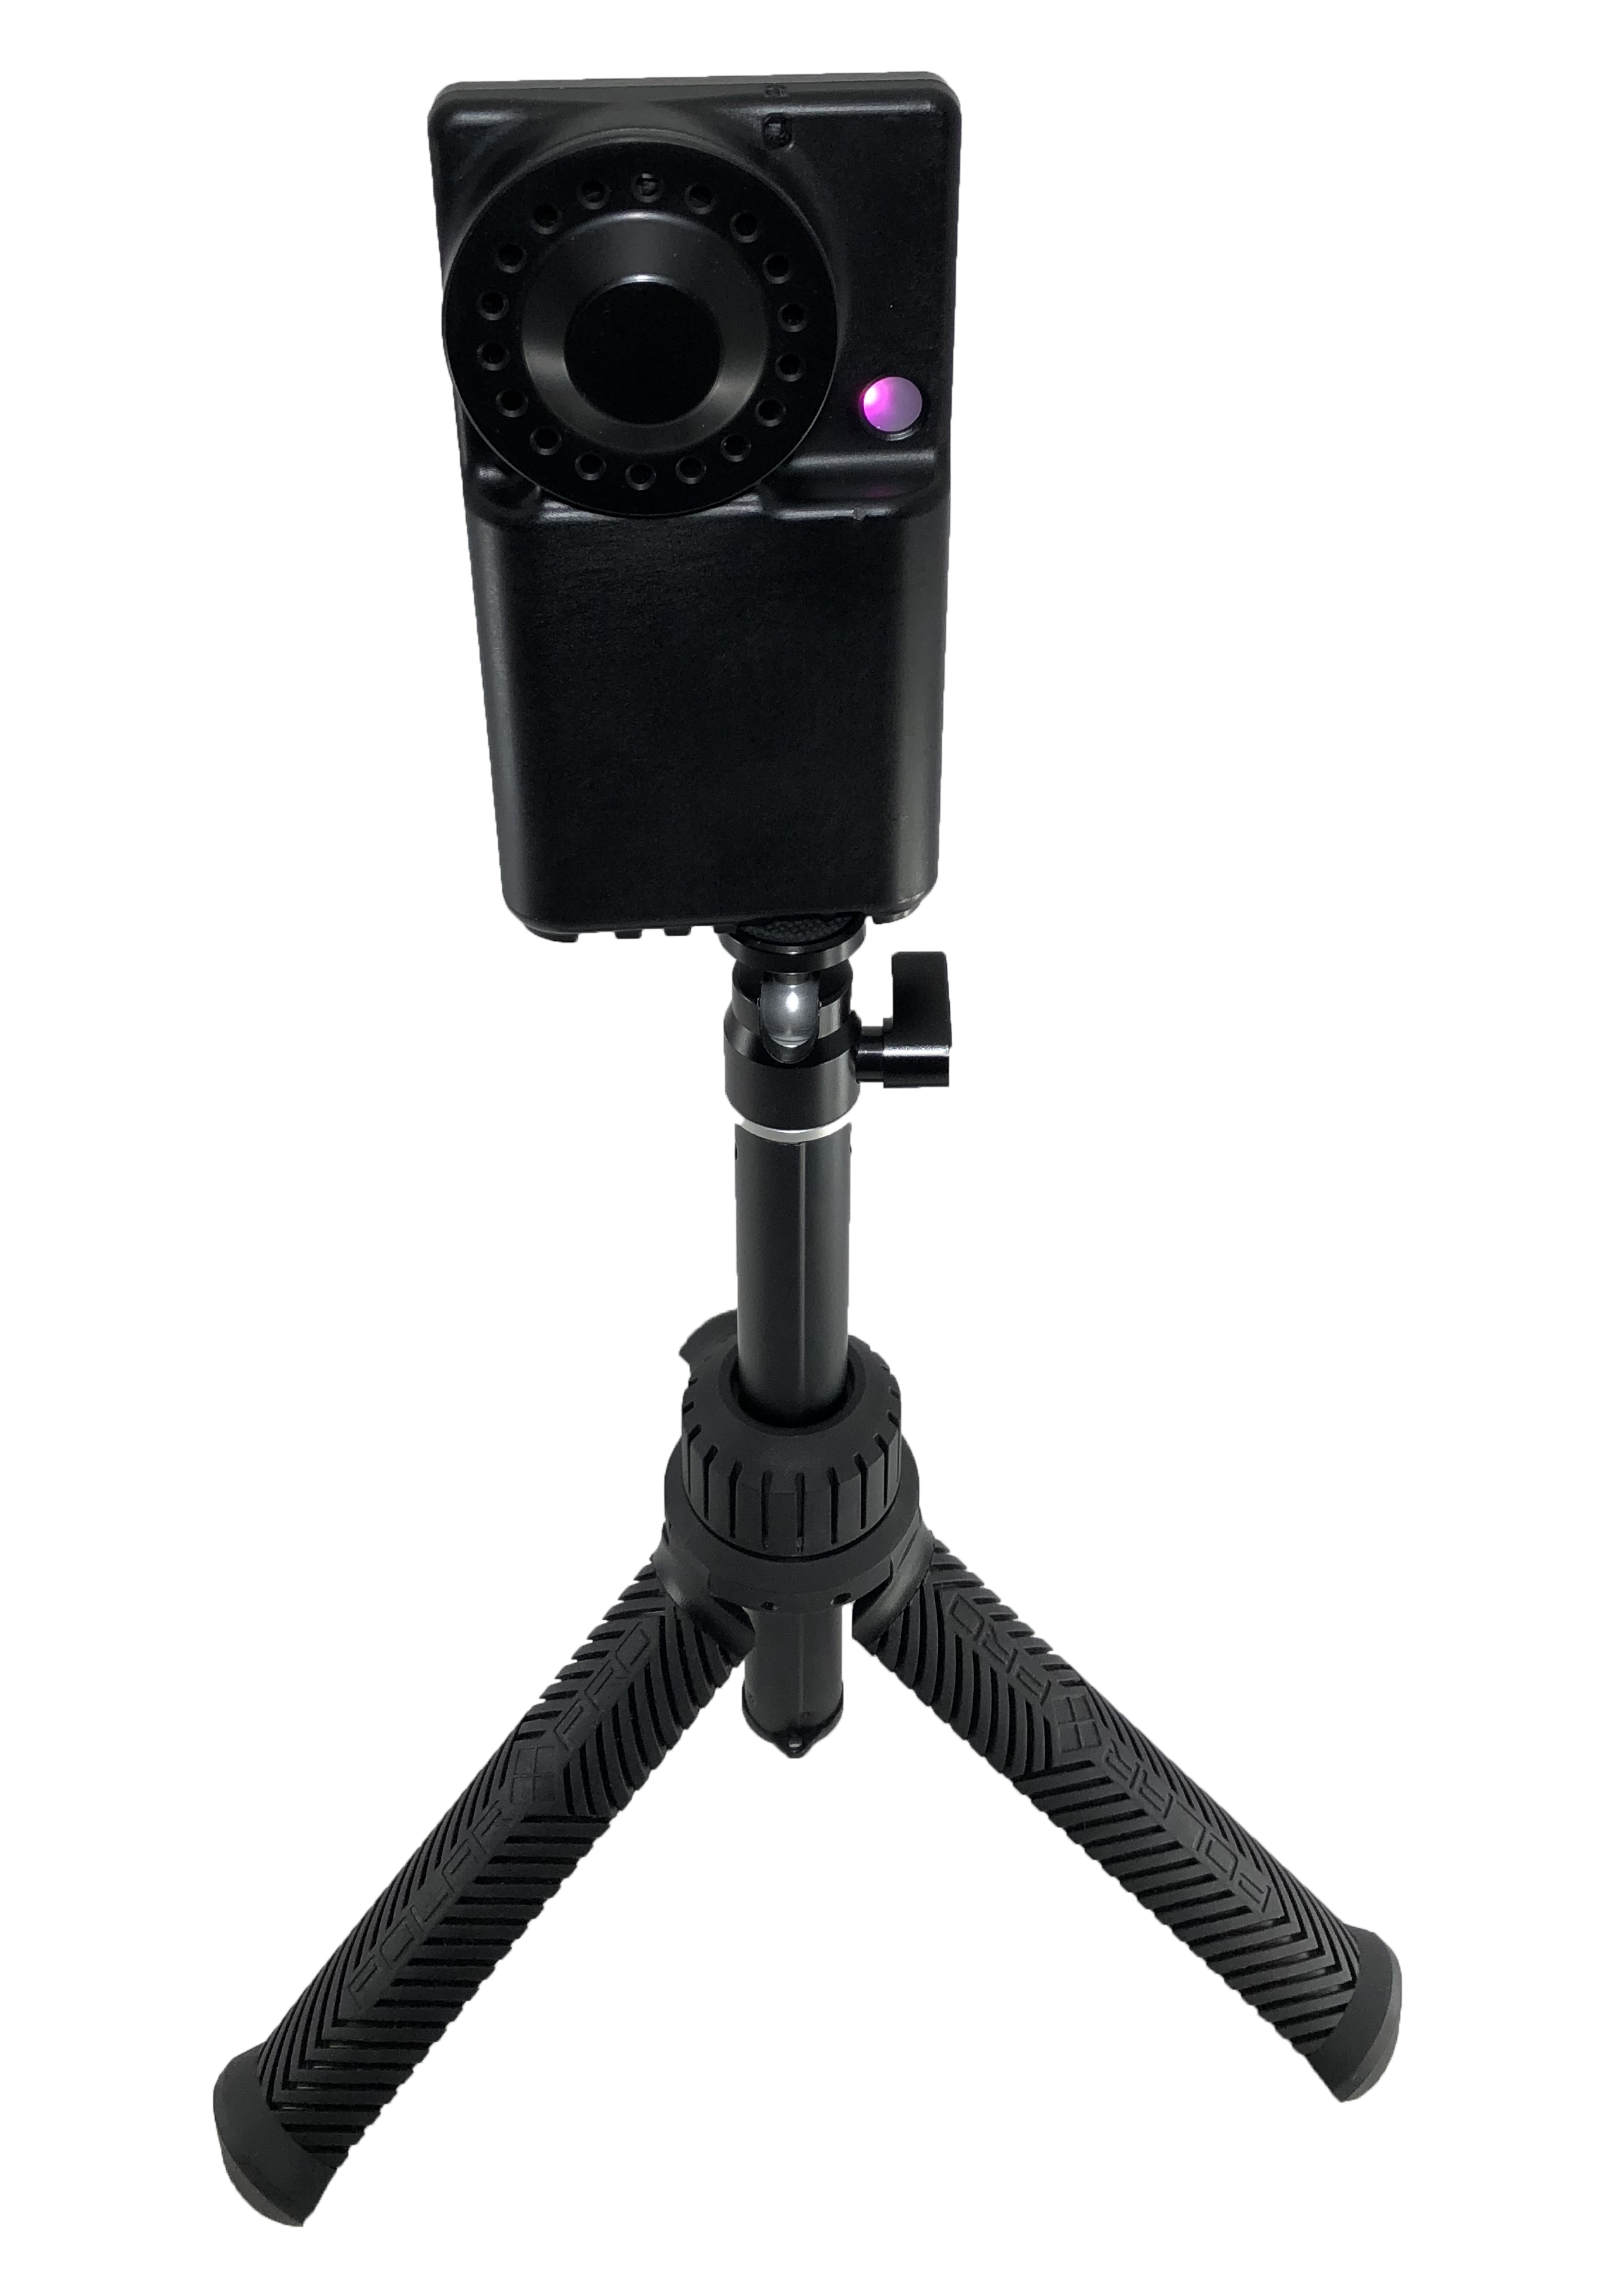 AST the ultrasonic personal air sampler can be mounted on a tripod for stationary air sampling in a fixed location.png